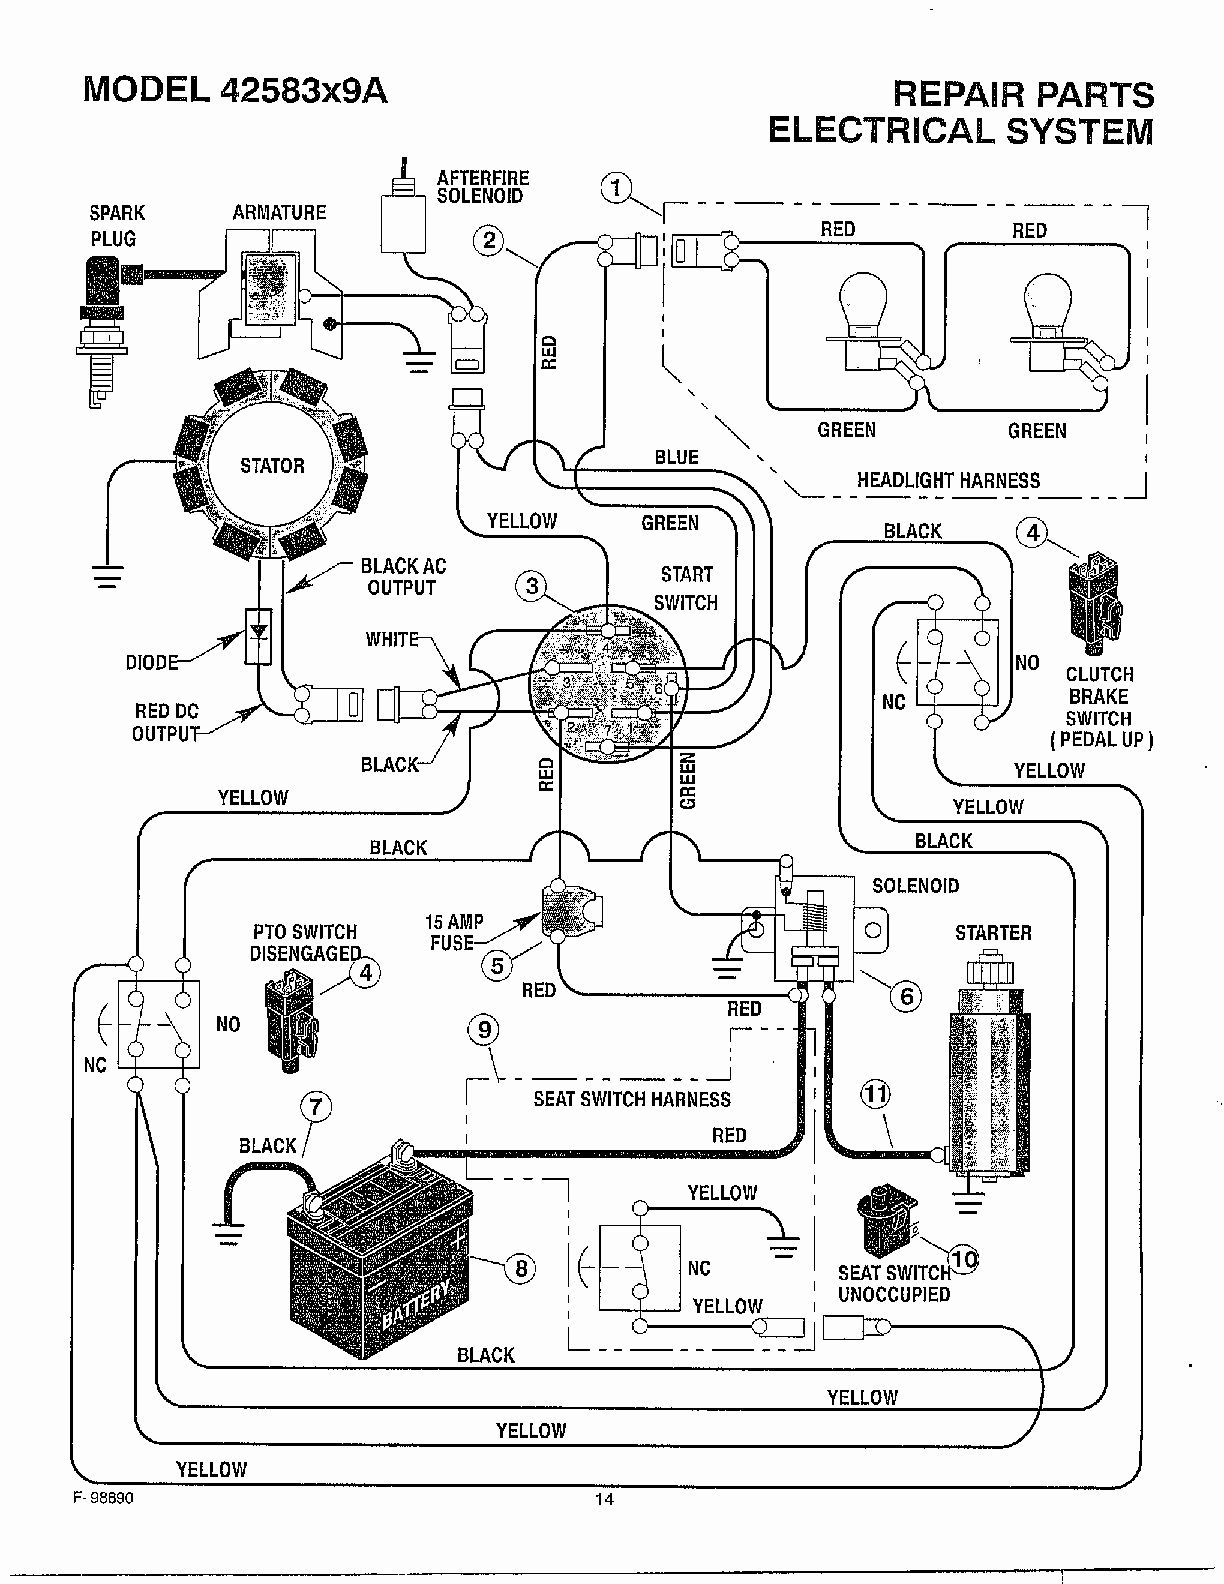 Solenoid For Murray Riding Mower Wiring Diagram   Wiring Diagram - Wiring Diagram For Murray Riding Lawn Mower